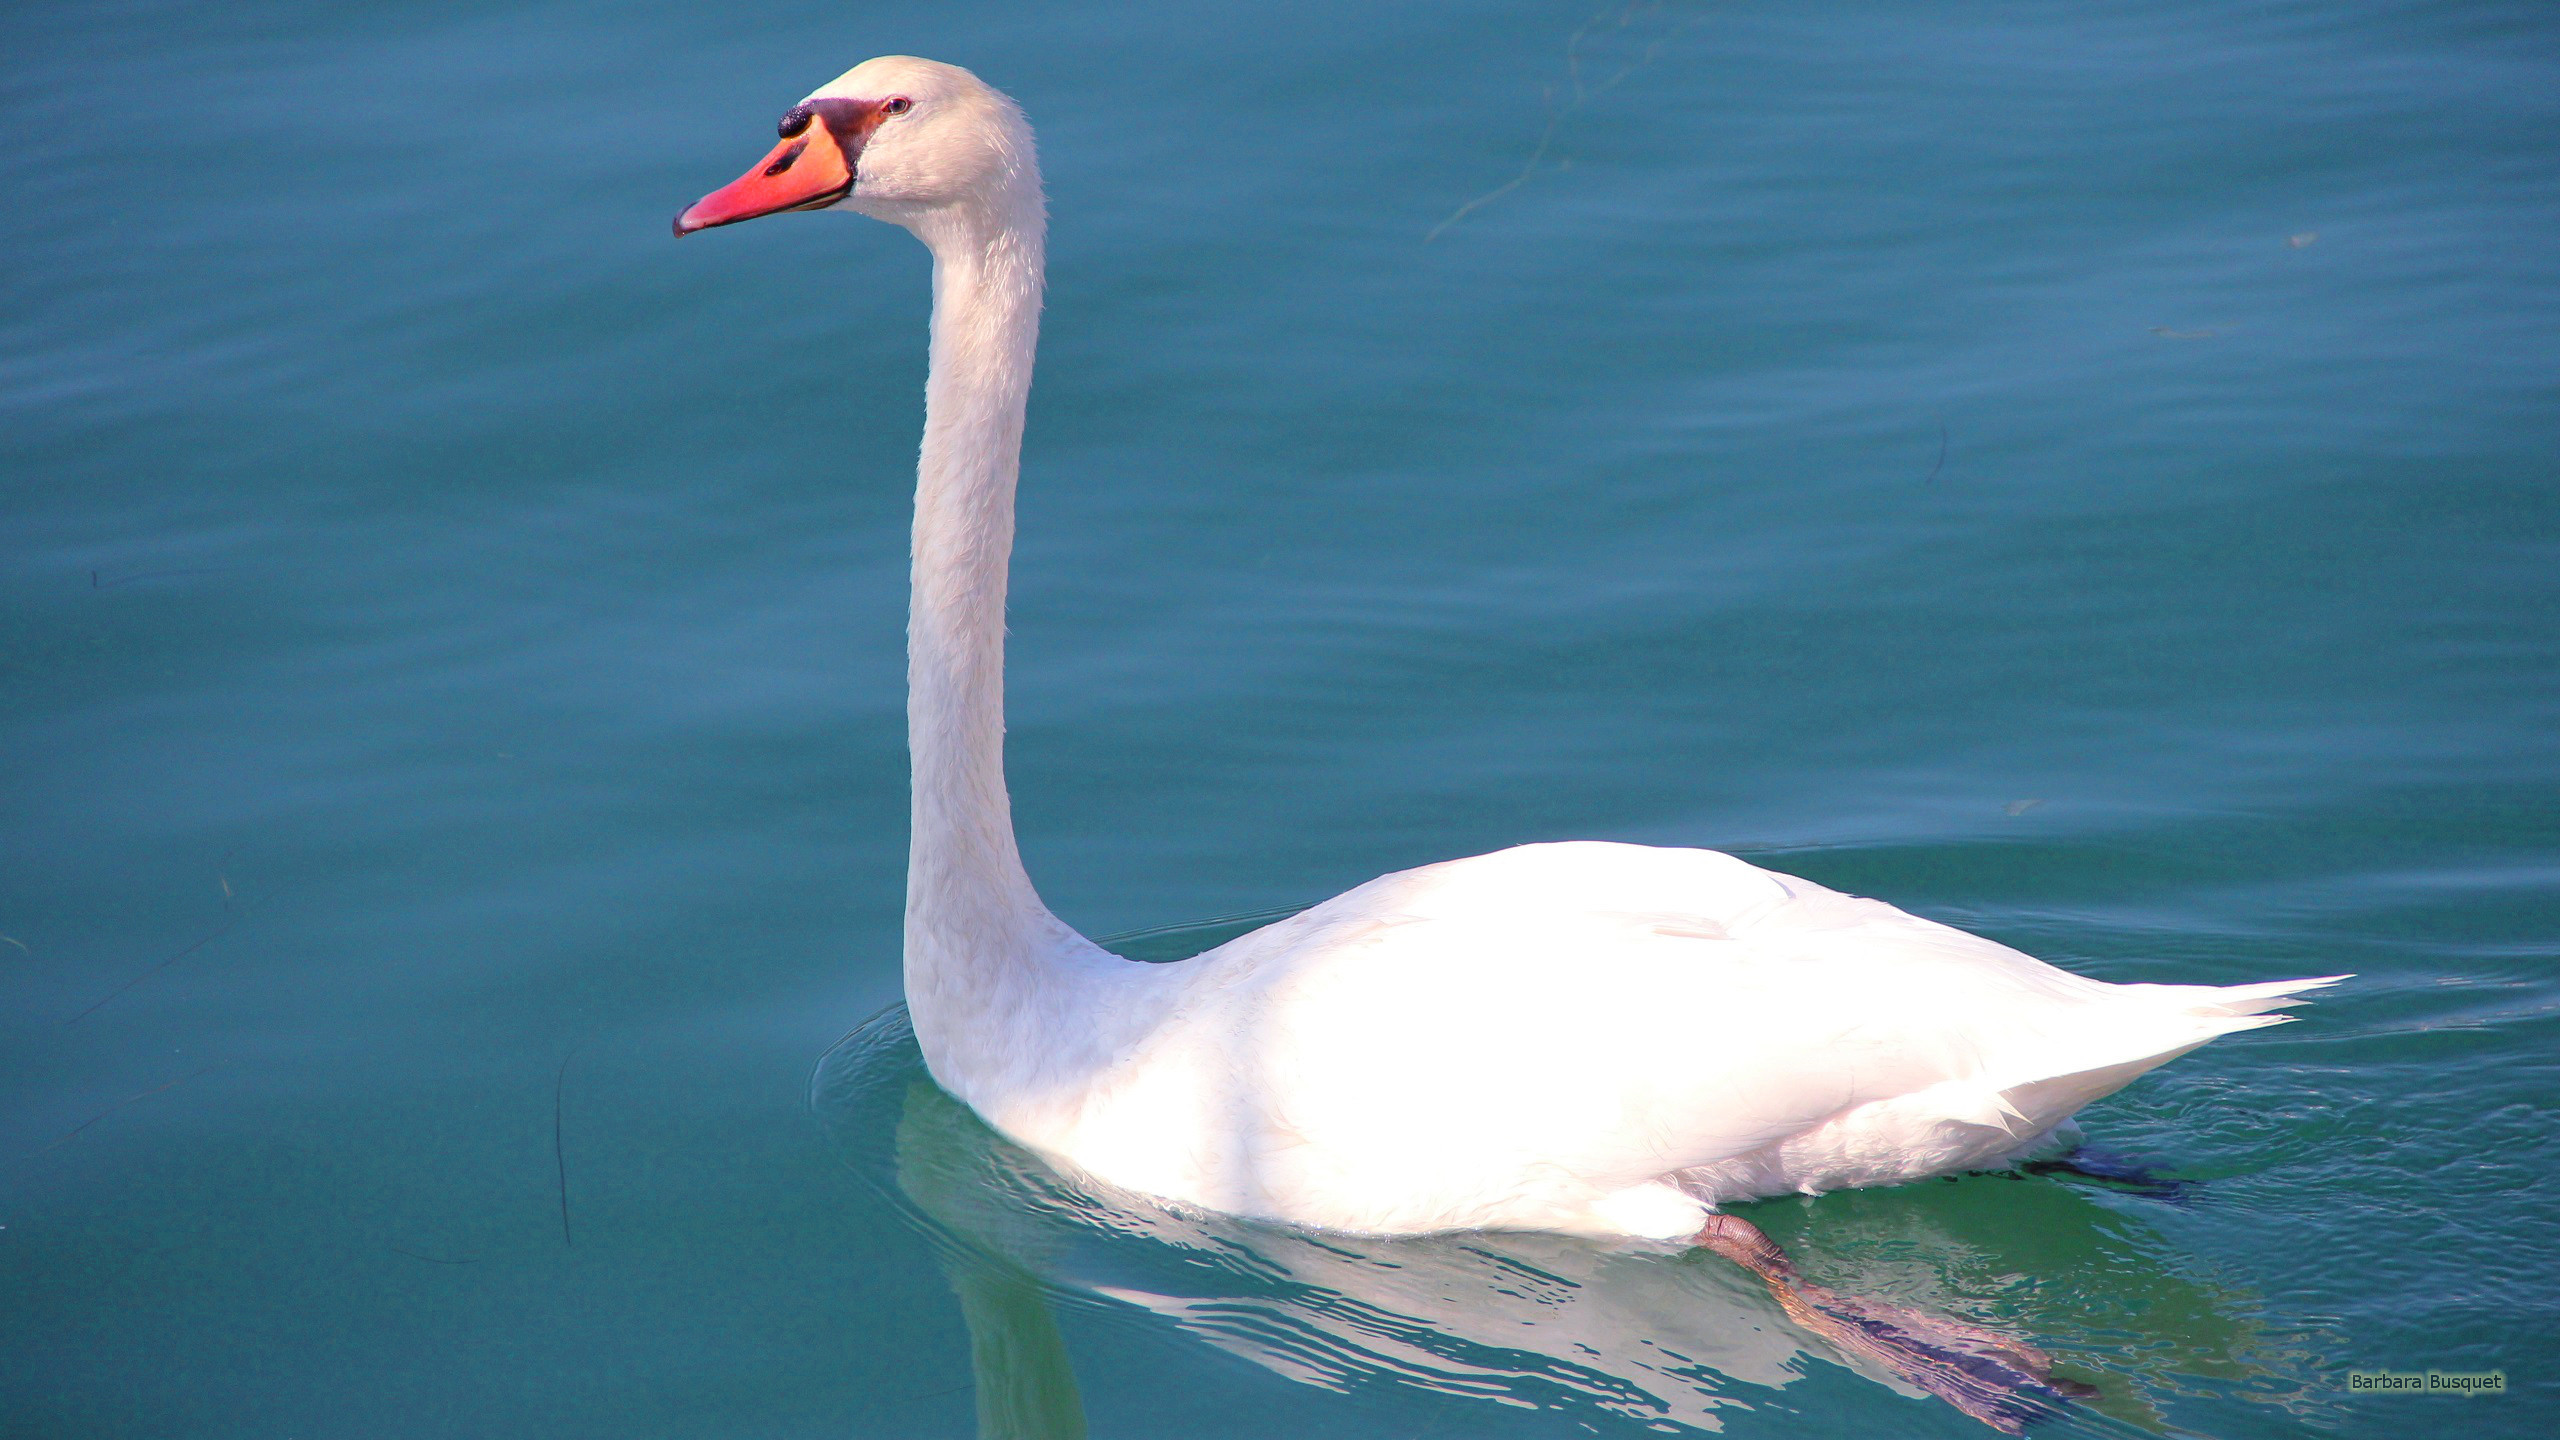 Res: 2560x1440, HD wallpaper White swan in the blue water.